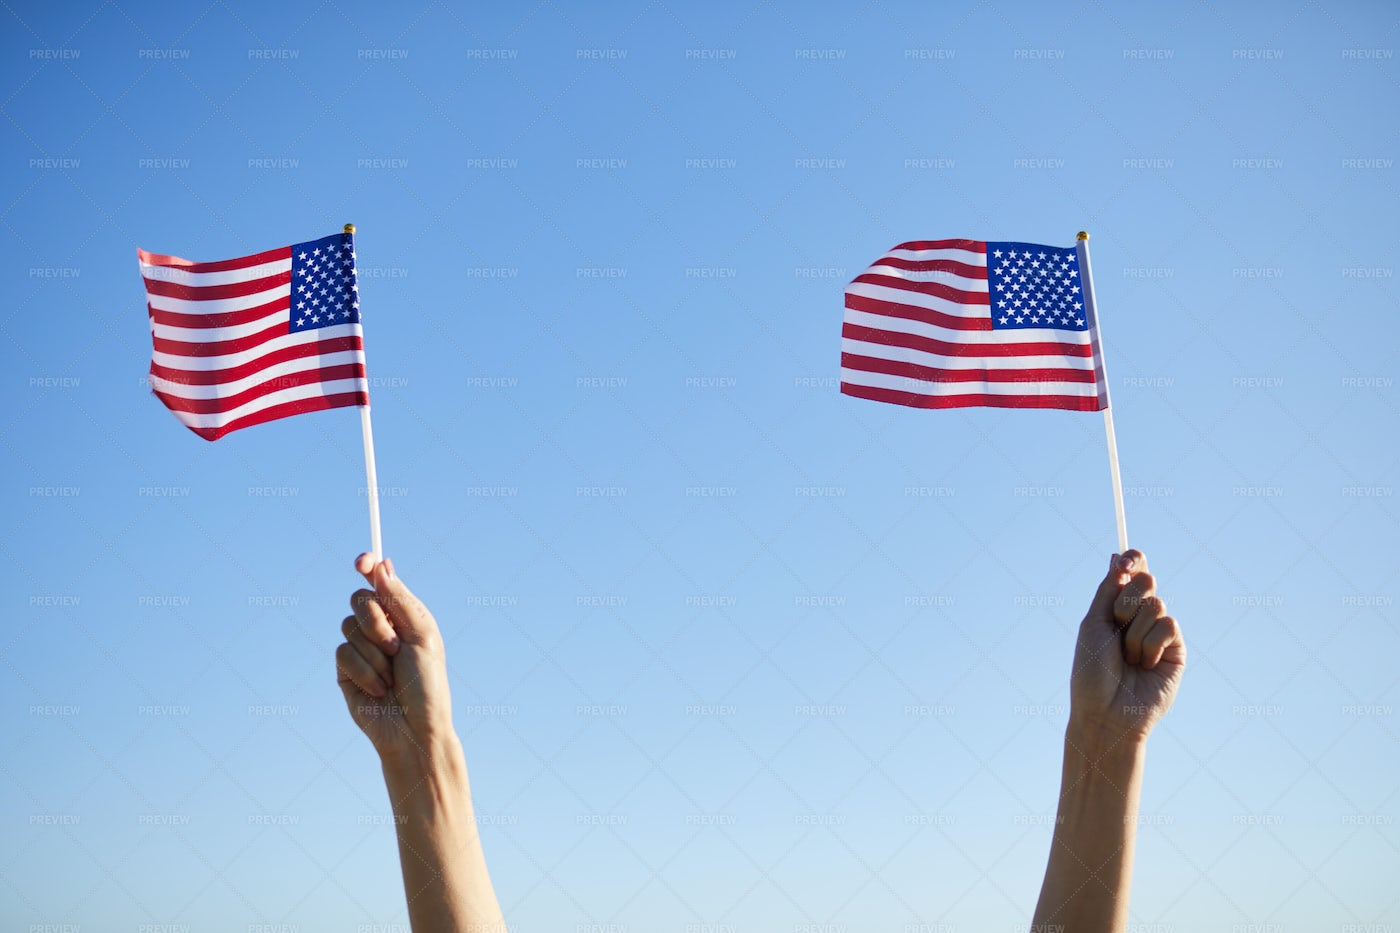 Holding Small Flags At Parade: Stock Photos